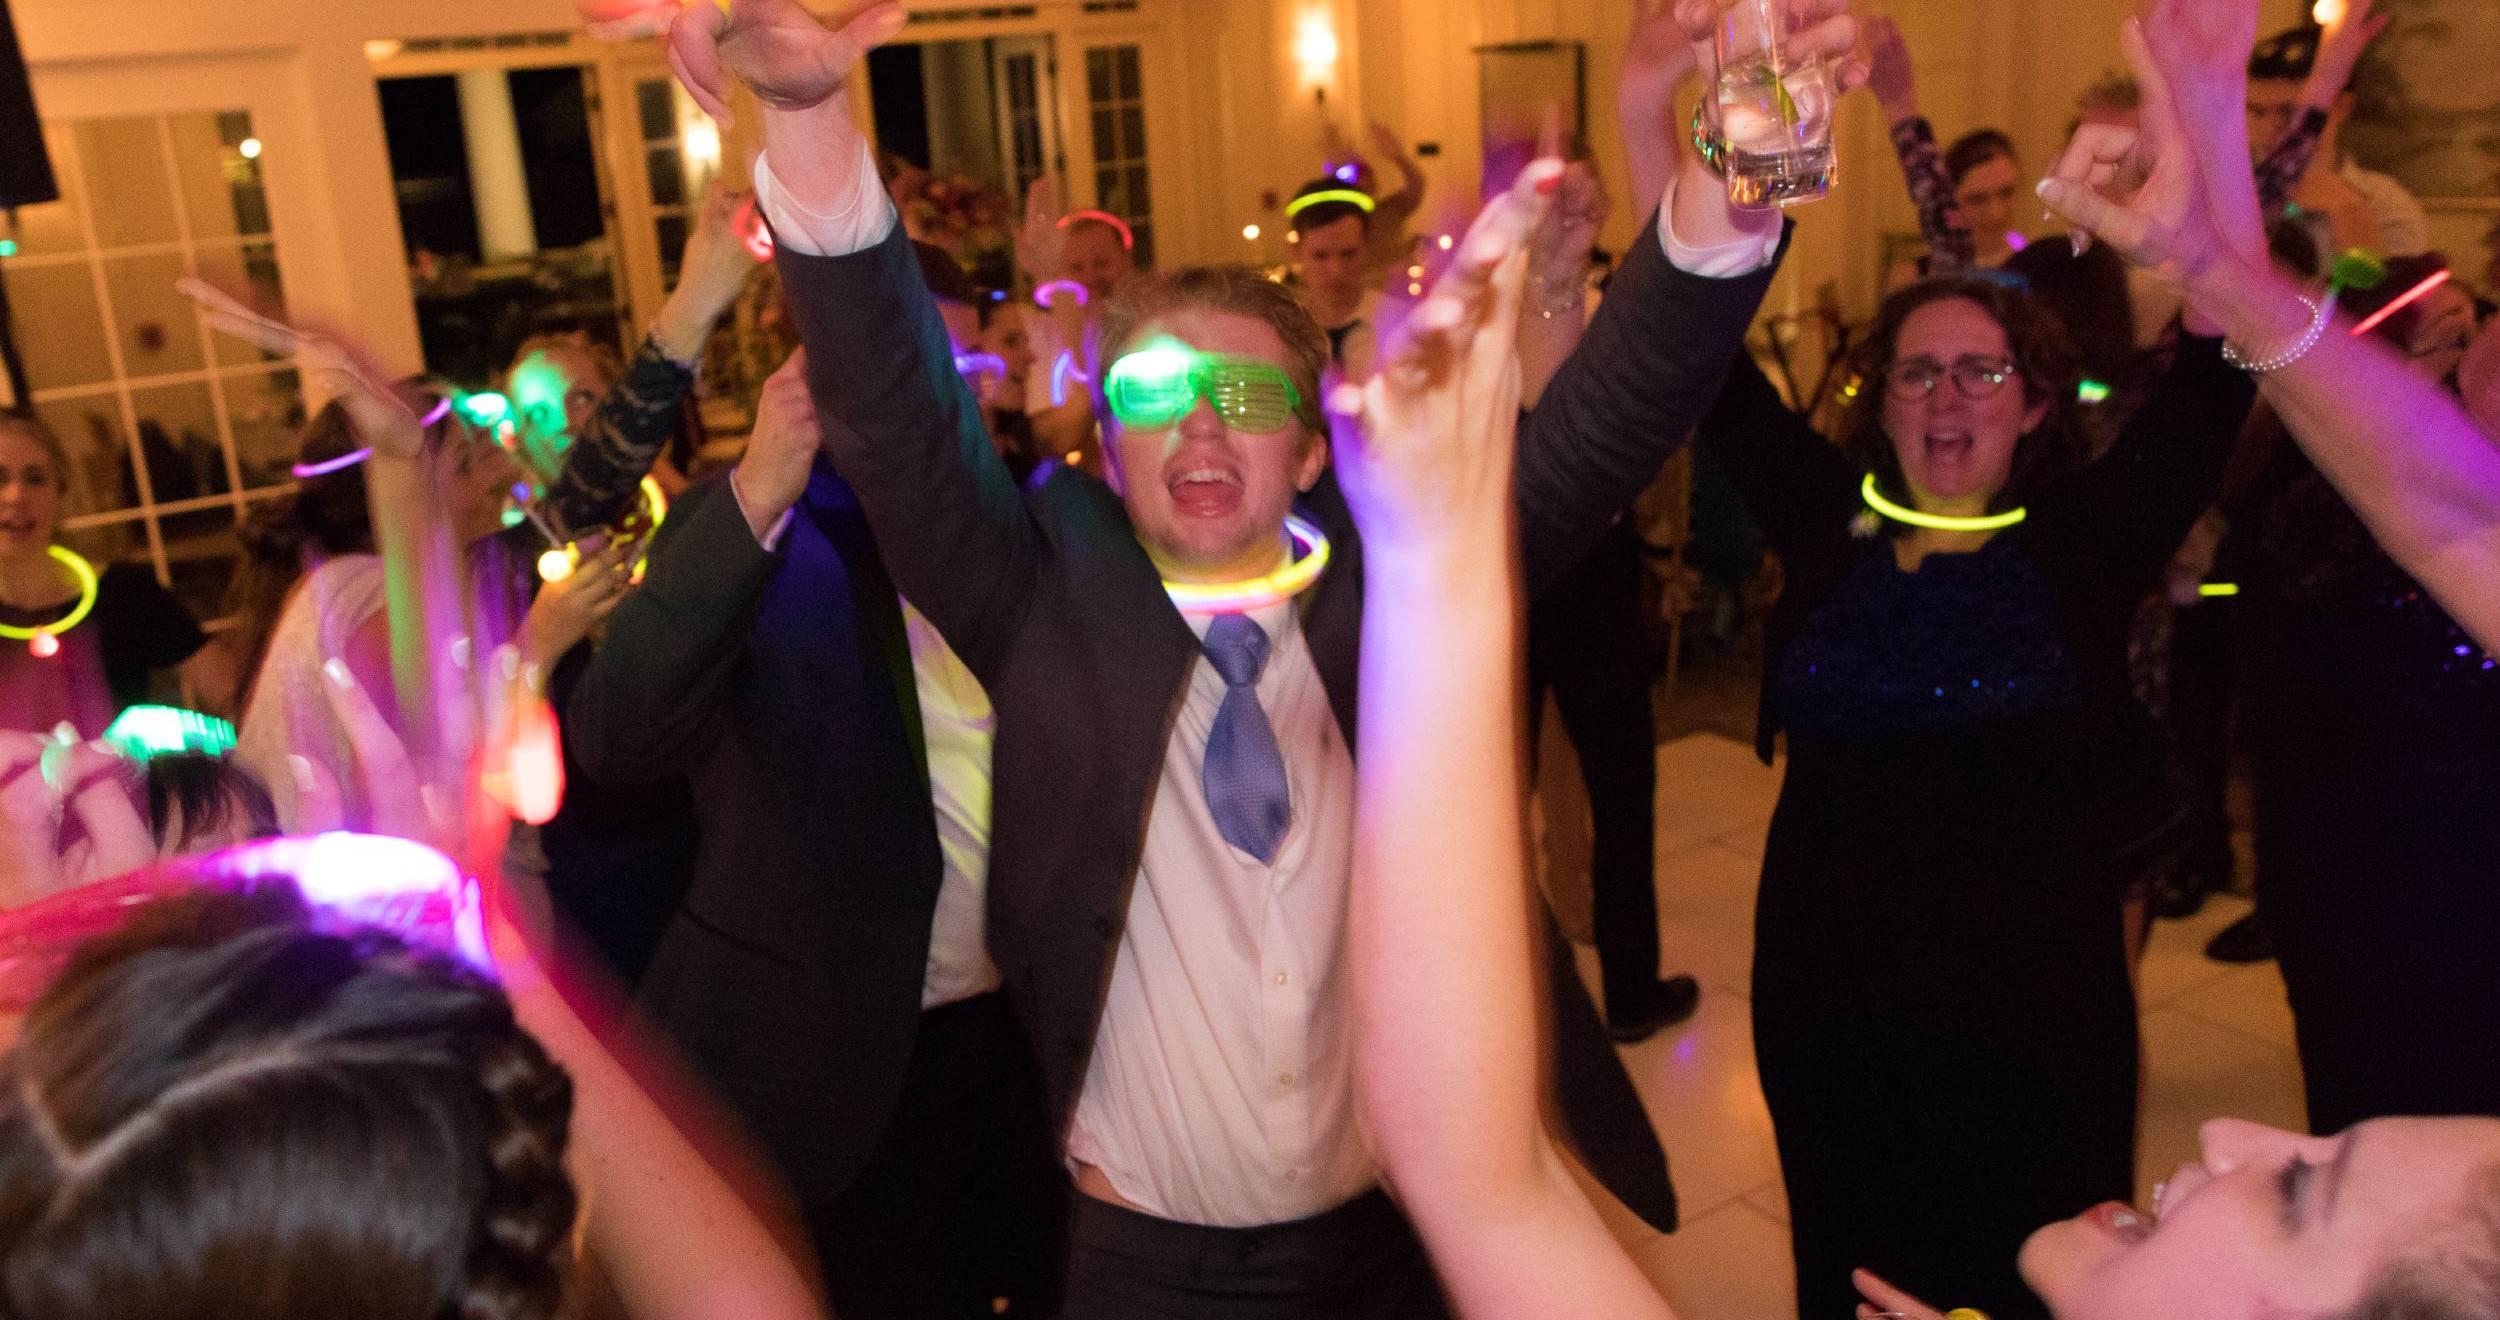 wedding guests dance with hands up and glow sticks